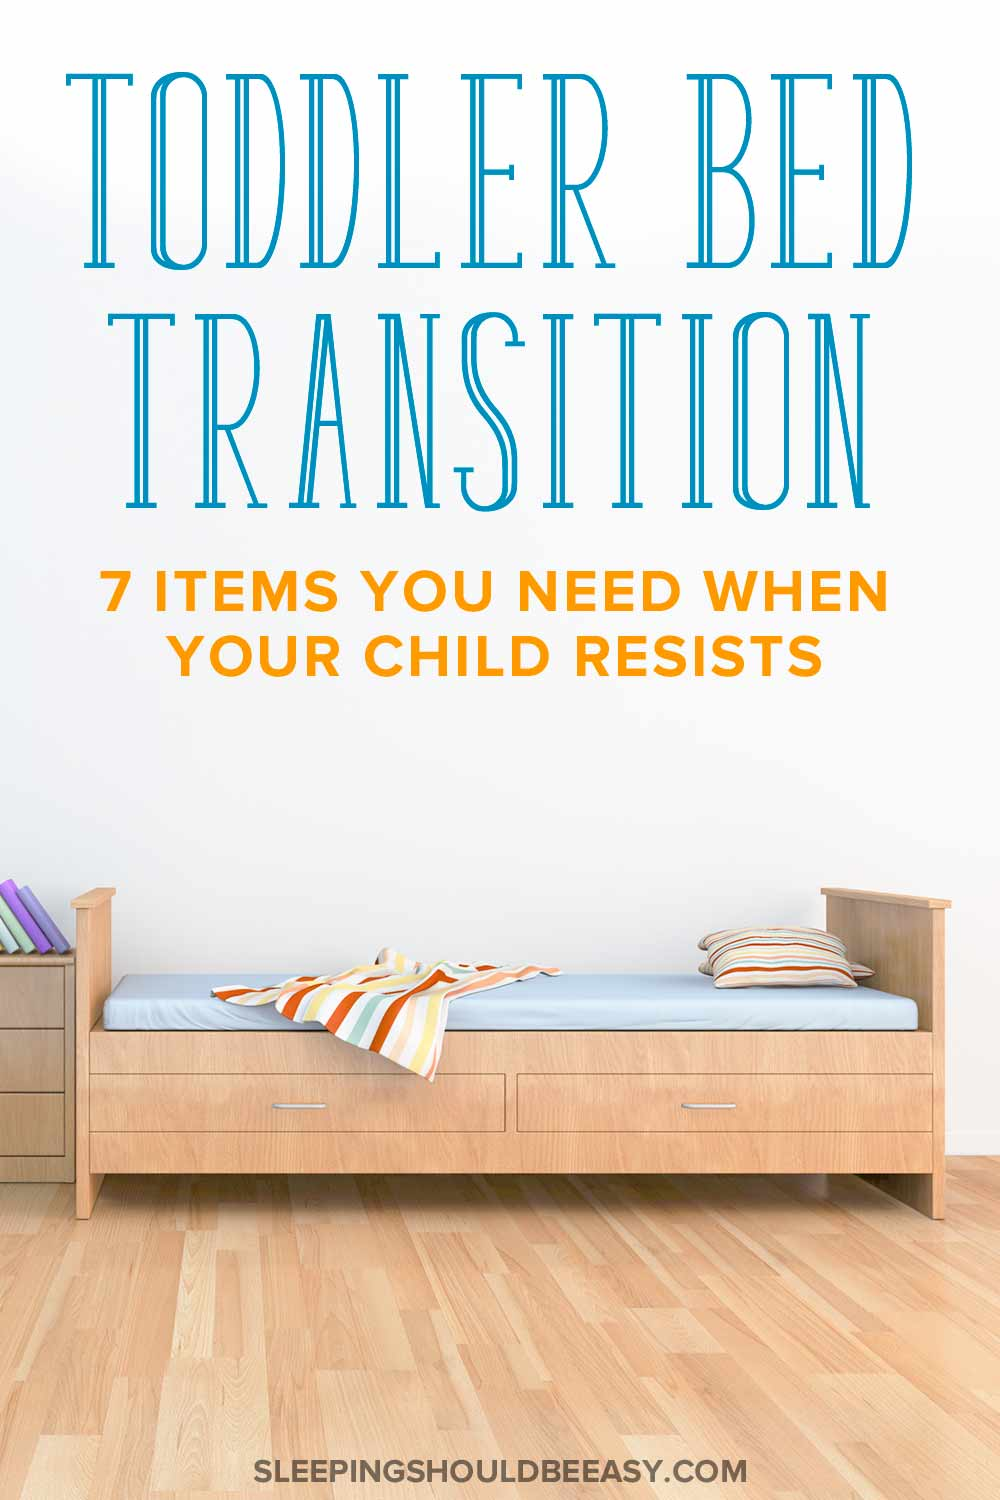 Does your toddler fight sleeping in a big bed? Discover the top 7 items you need when your child resists the toddler bed transition. You'll learn effective tips and ideas that help children adjust to and stay in their new beds.